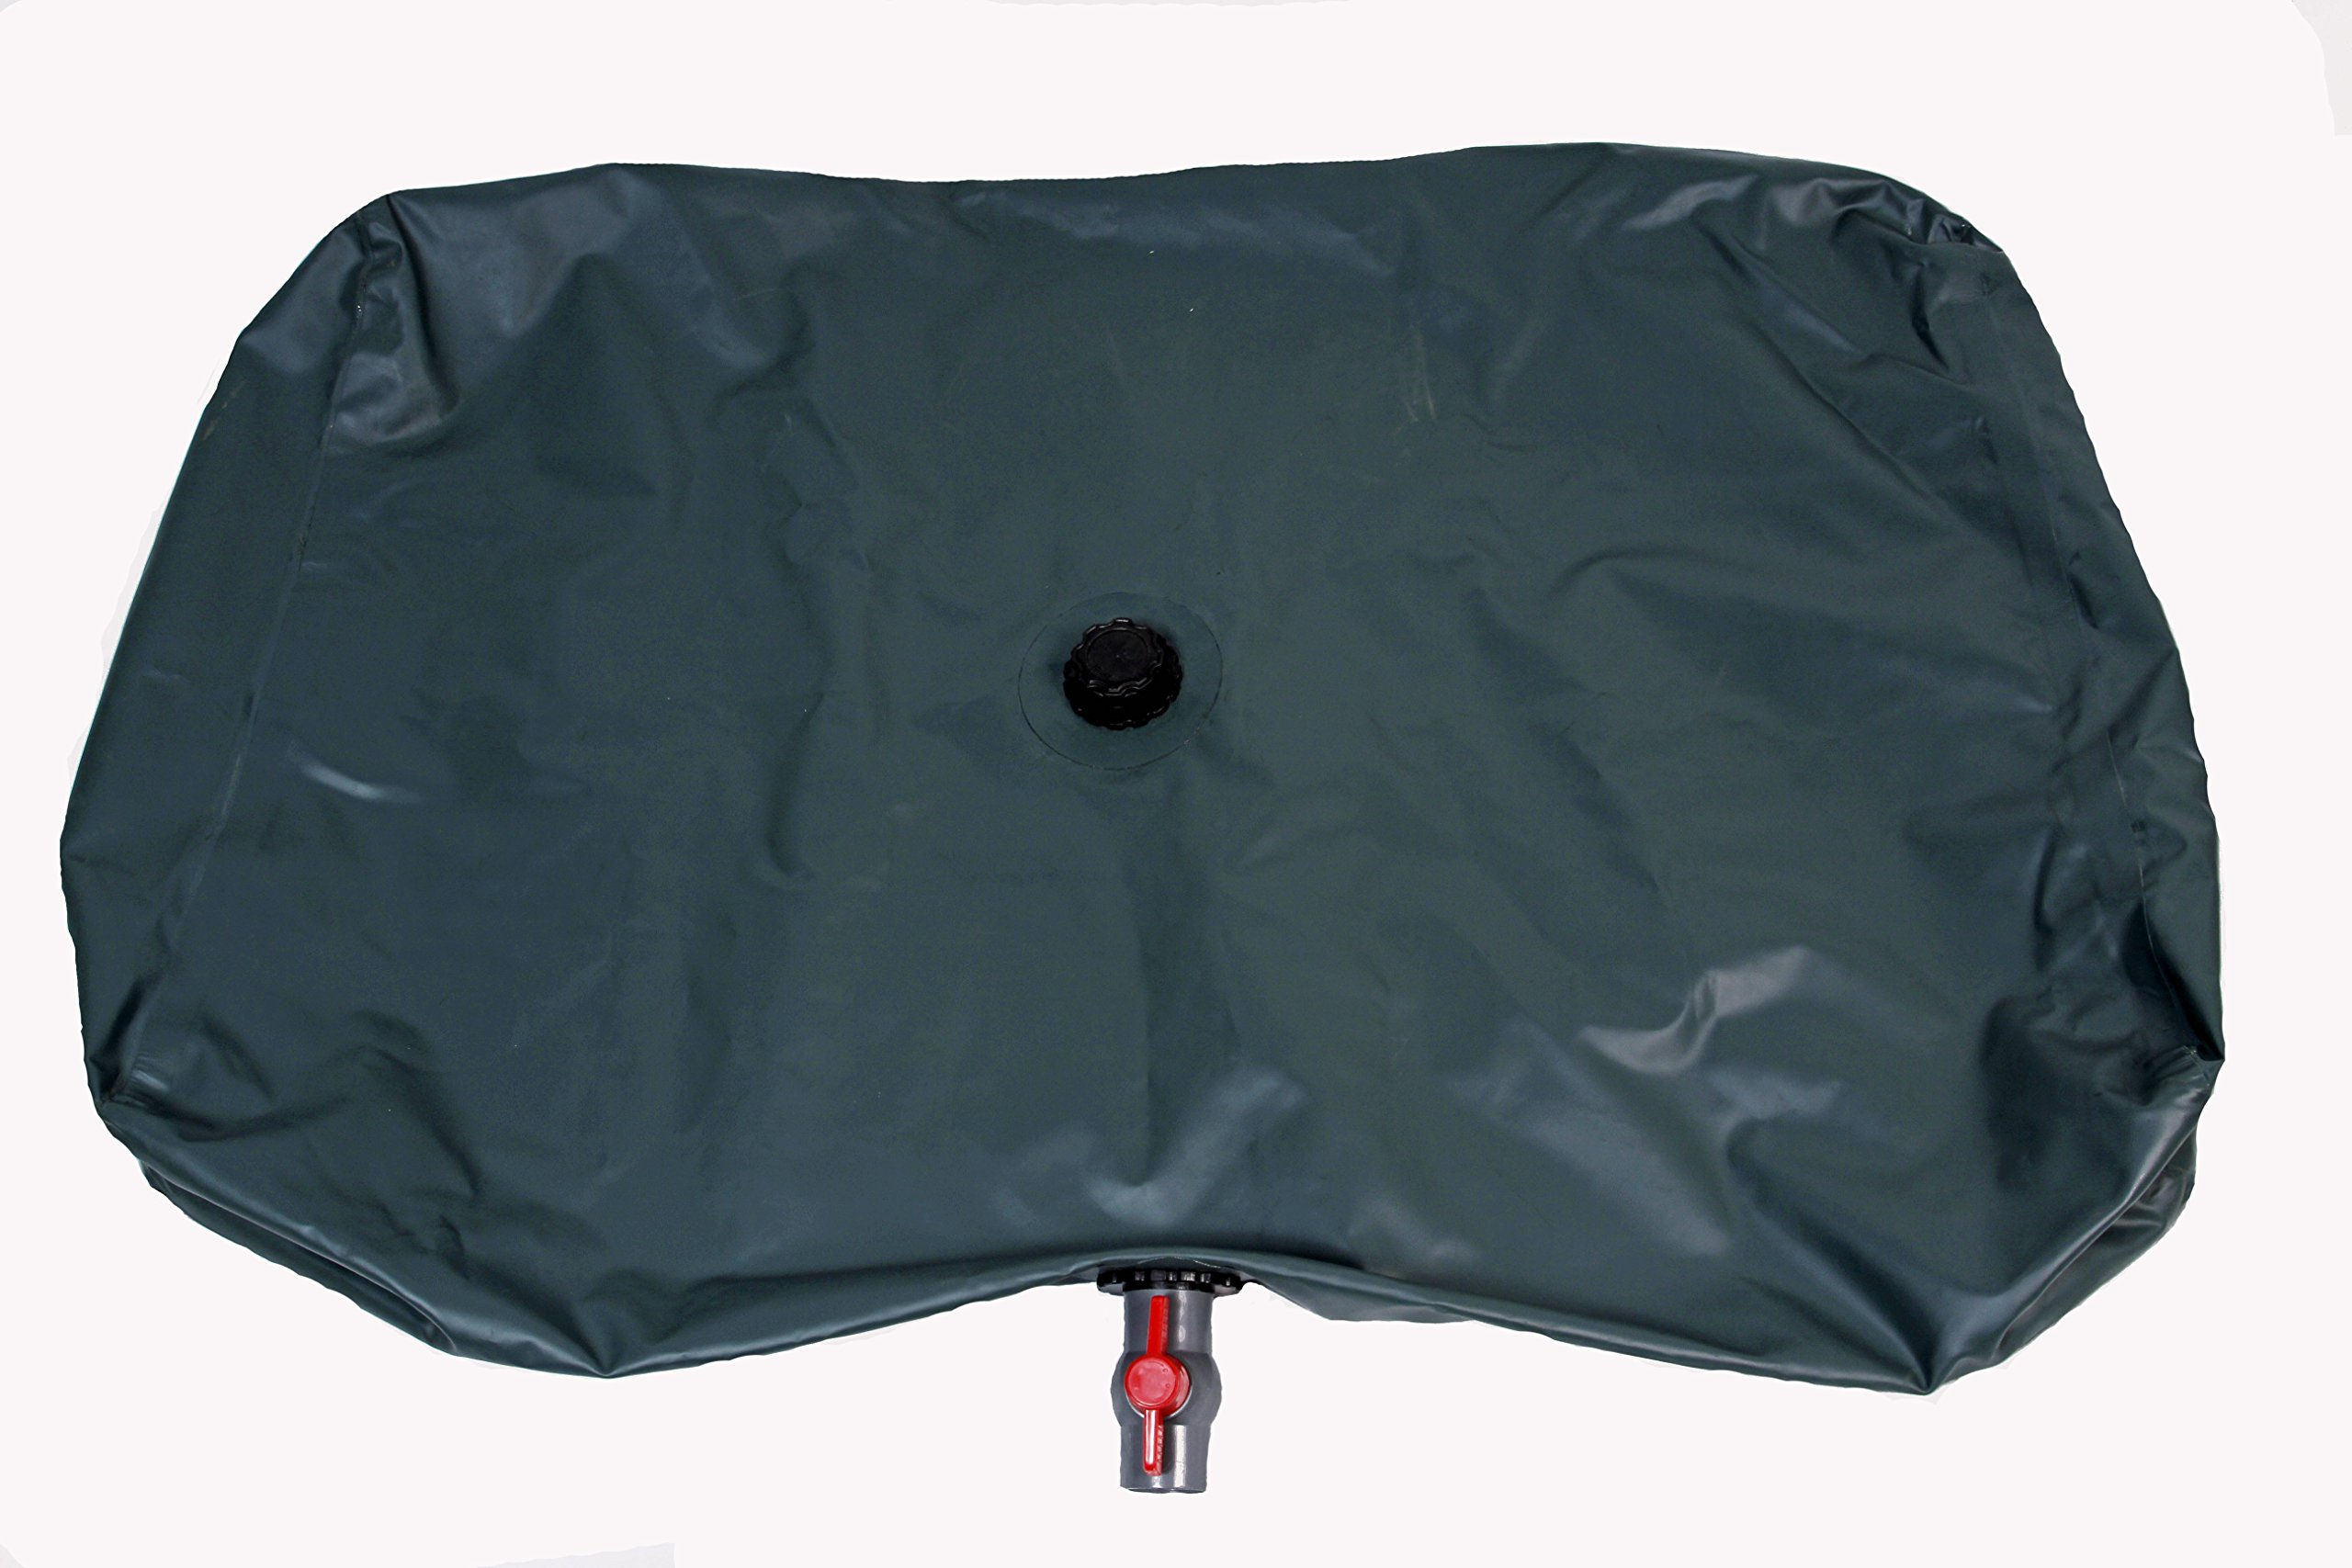 Ivy Bag 100 Gallon Portable Water Bladder by IVy Bag